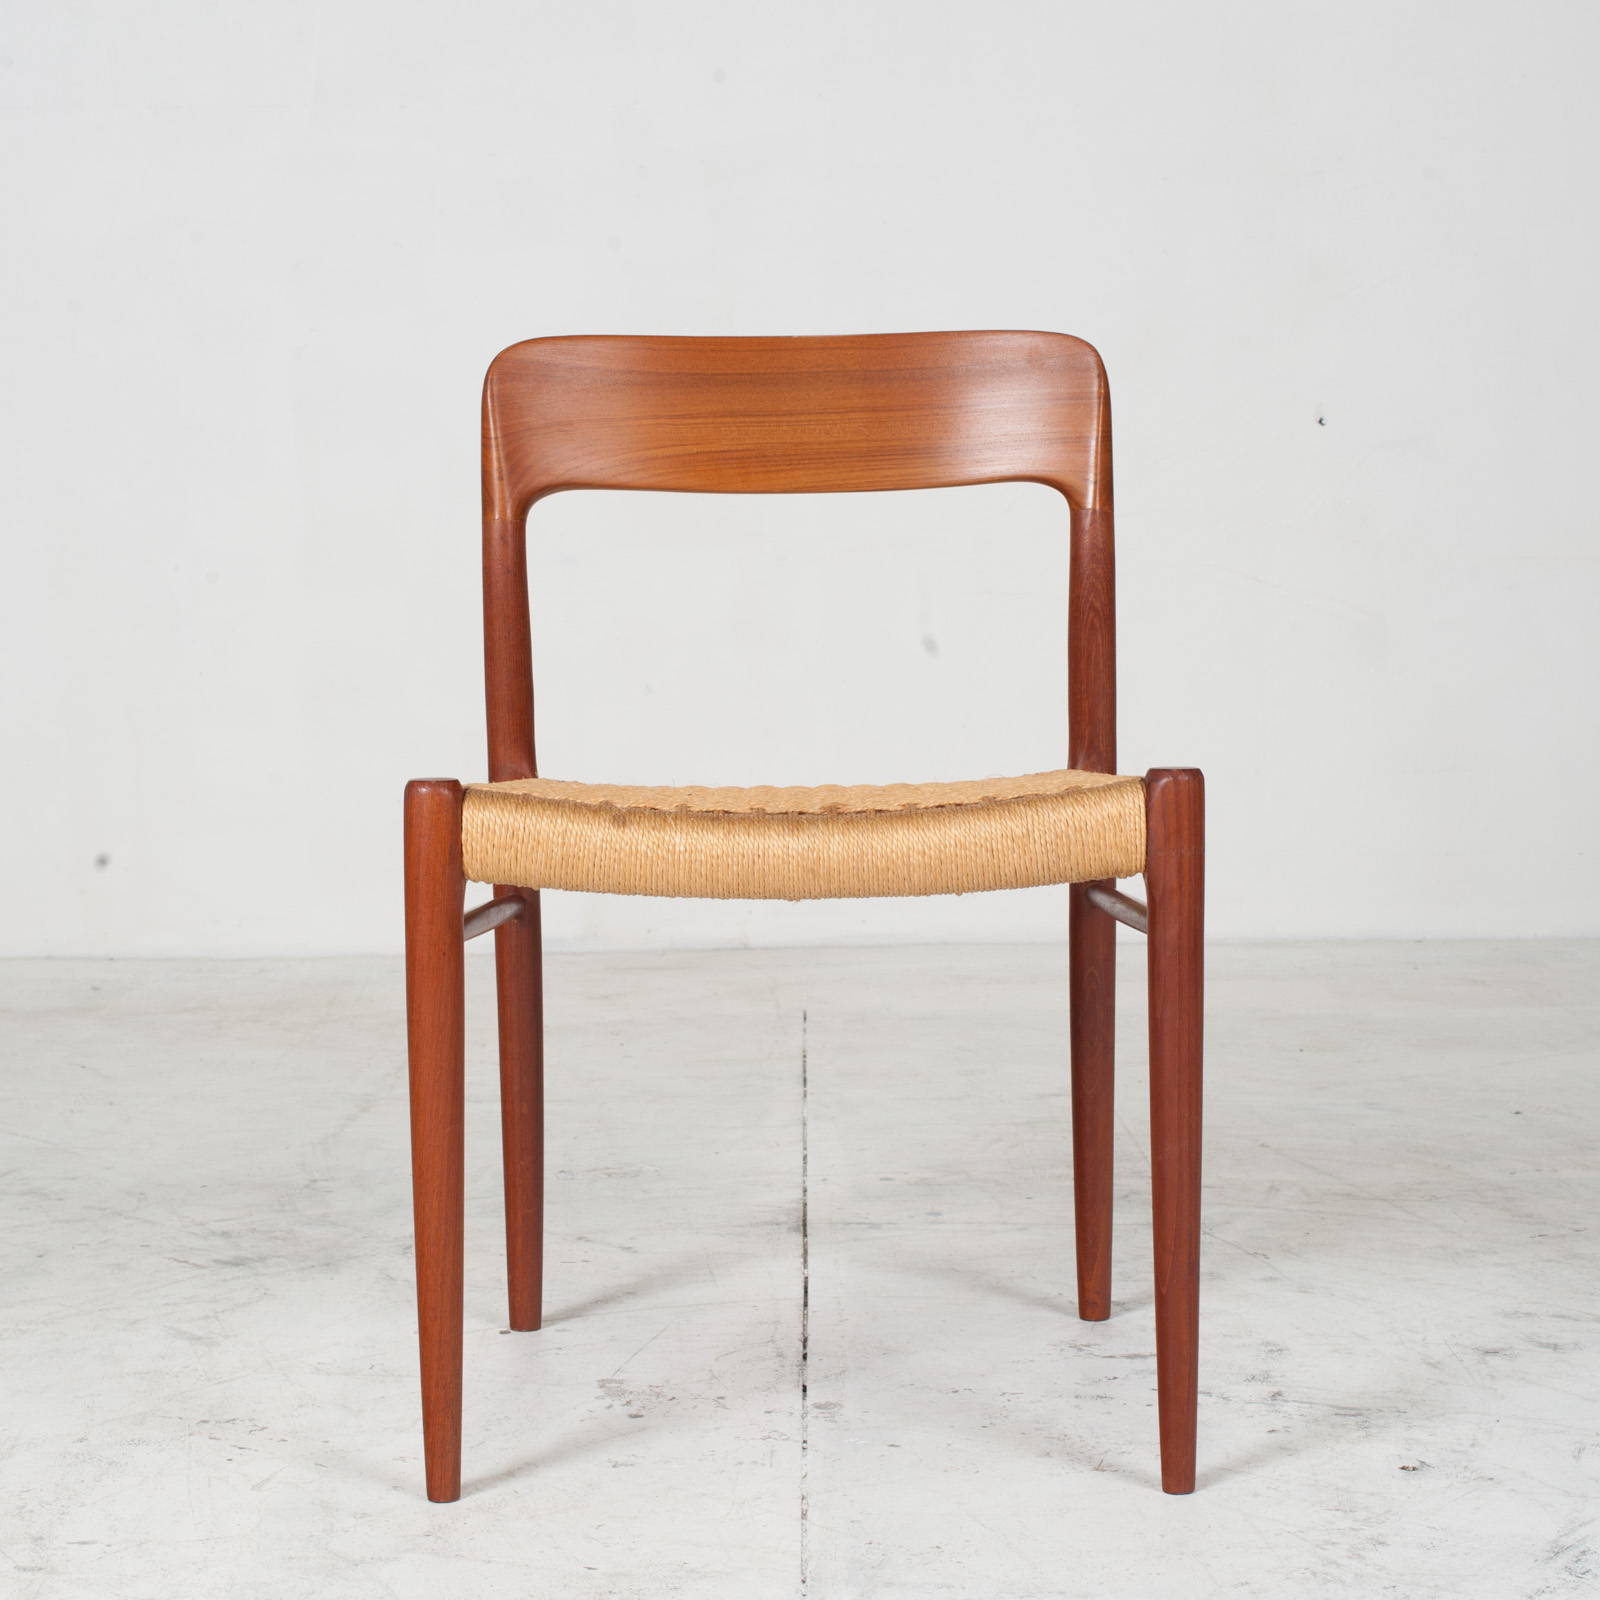 Set Of 6 Model 75 Dining Chairs By J. L. Moller In Teak And Cord 1960s Denmark 02